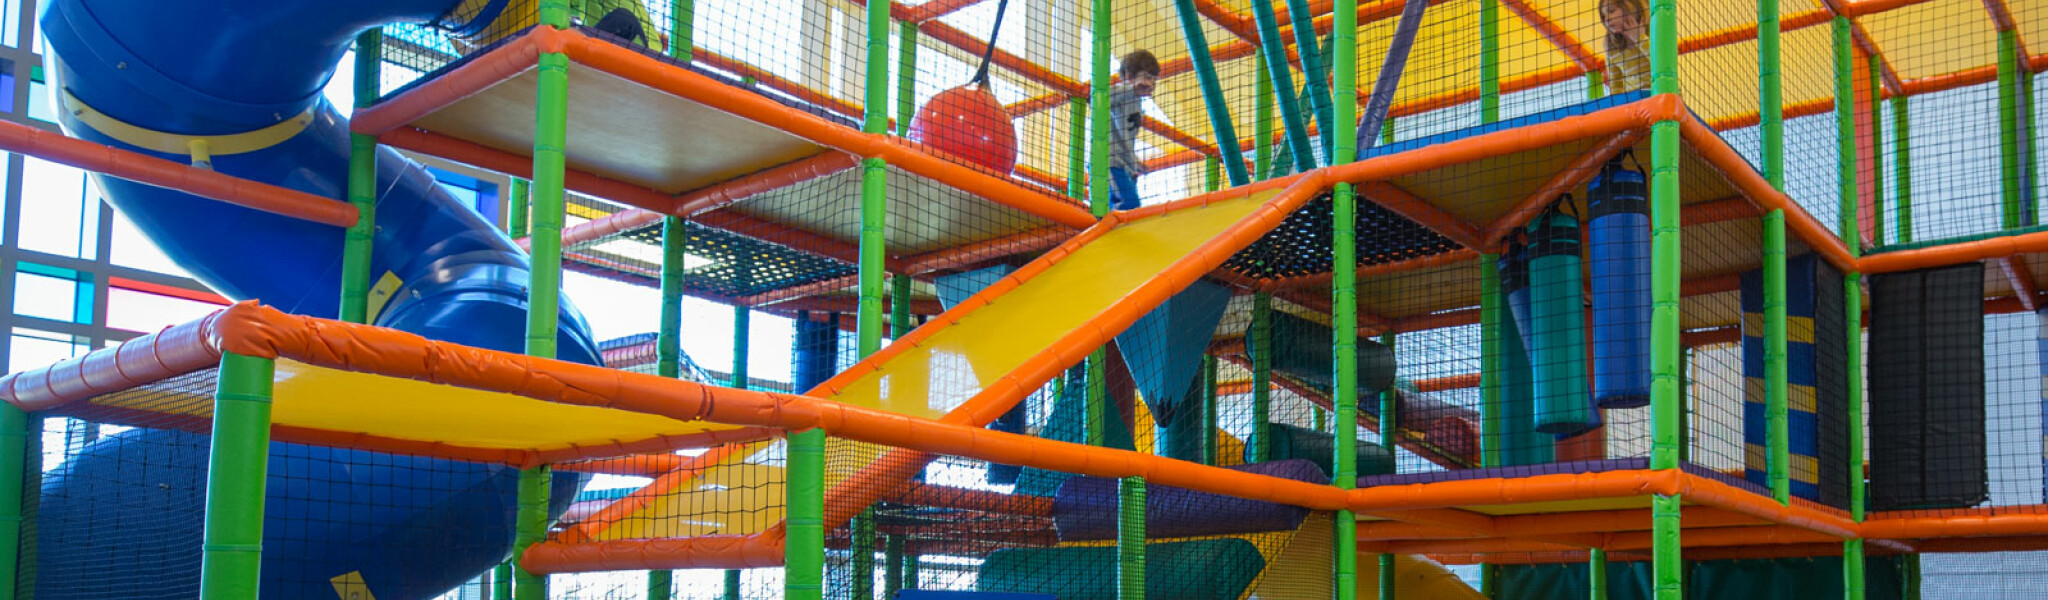 Fishers Play Area | Cornerstone Lutheran Church | Cornerstone Lutheran Church